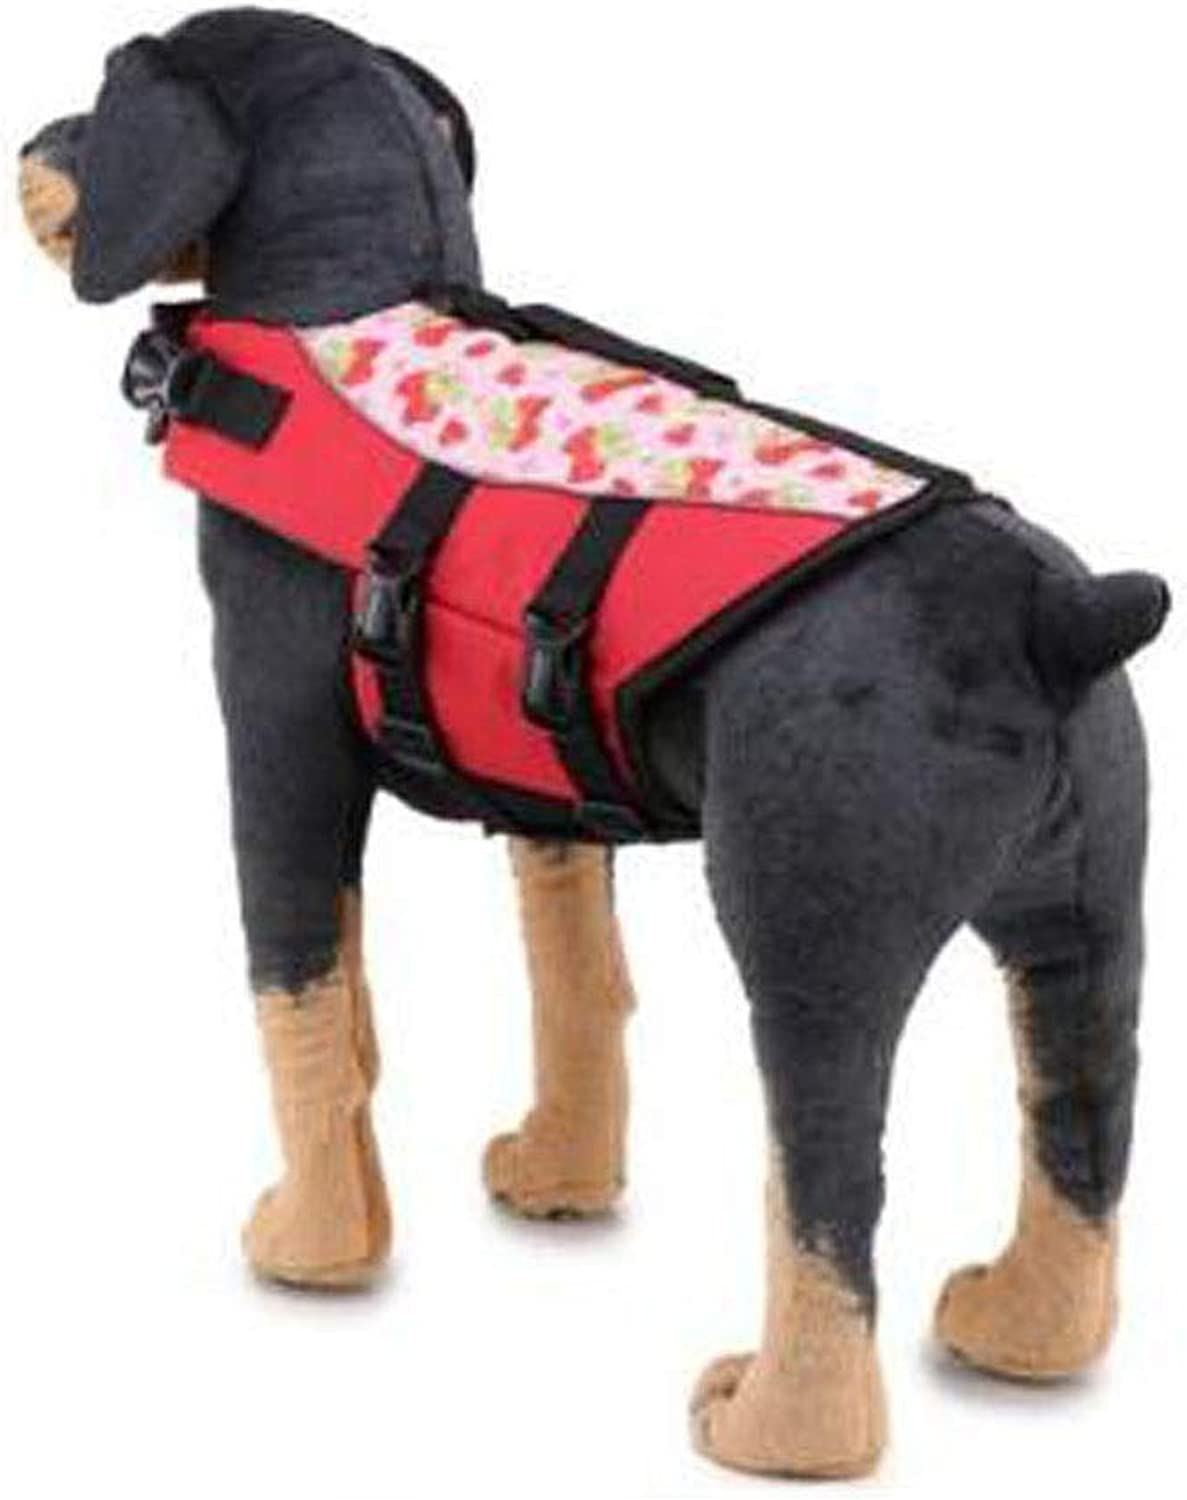 Kaiyitong Life Jacket, Dog's Safe and Sturdy Swimming Vest, Oxford Cloth Quality Material, Black and Other Multicolor Optional, Easy to Carry (Size  L, M, S) SkinFriendly